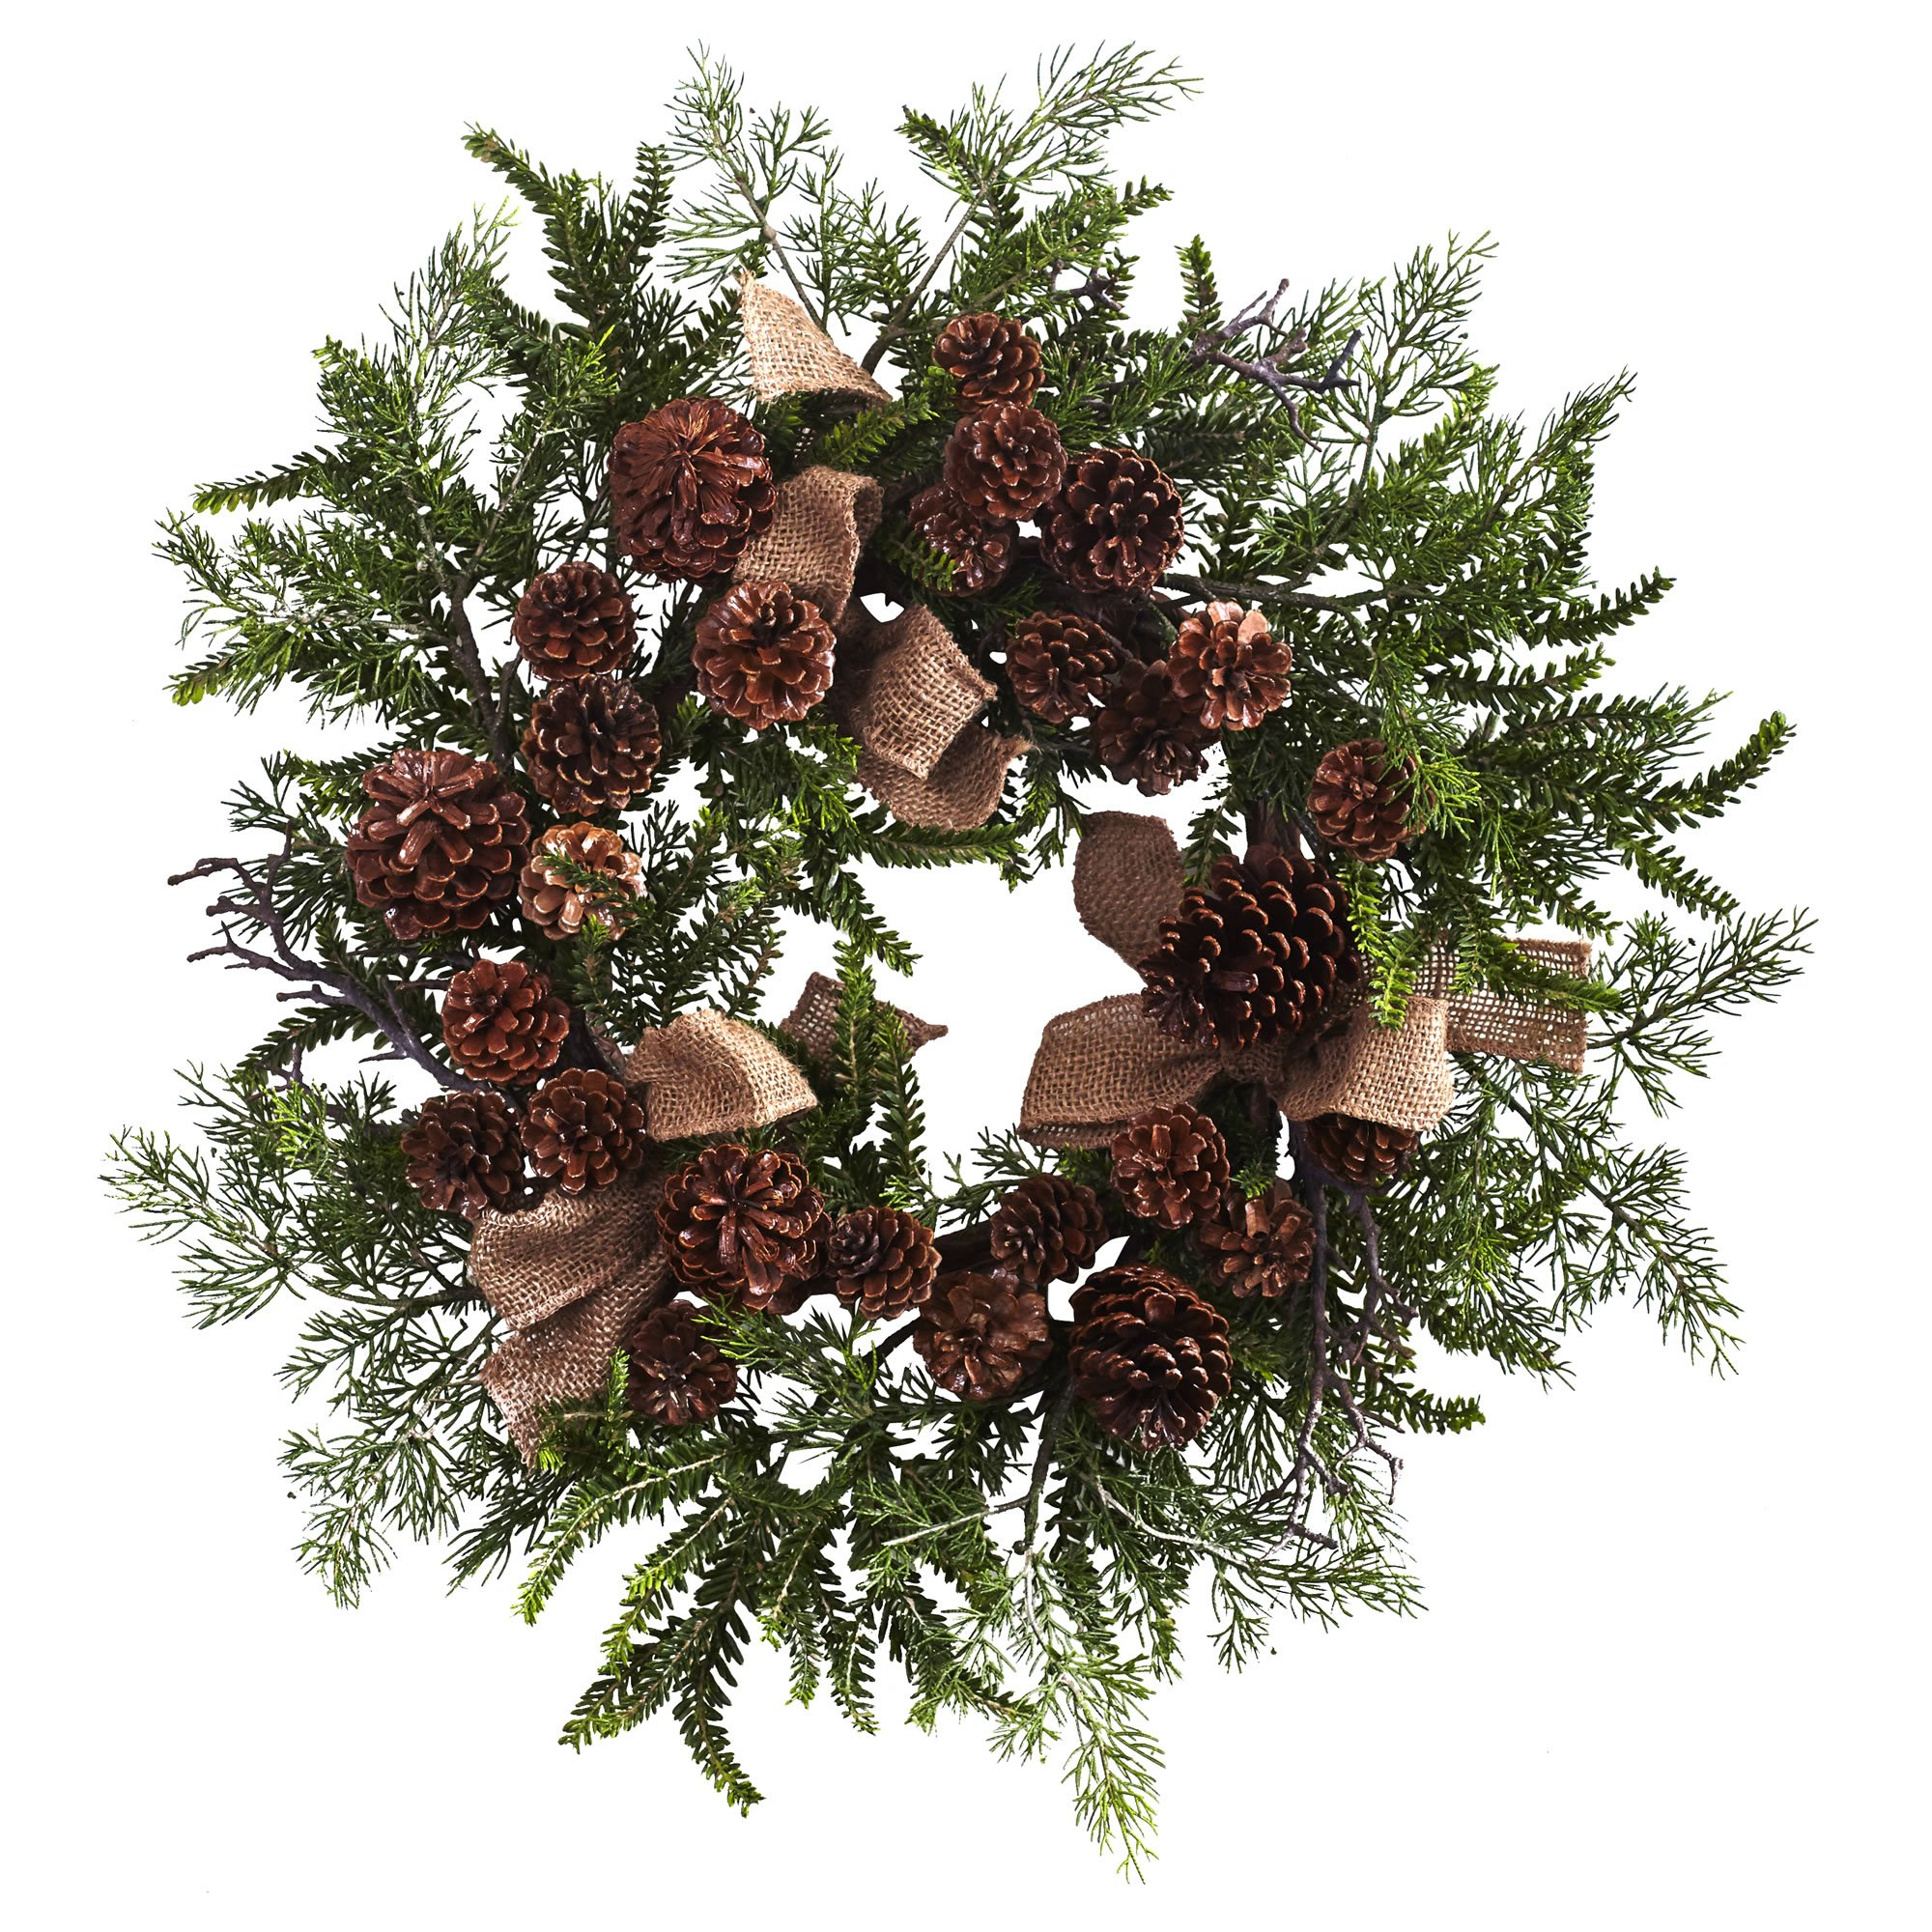 Nearly Natural Pine & Pine Cone Wreath with Burlap Bows, 24'', Green/Brown